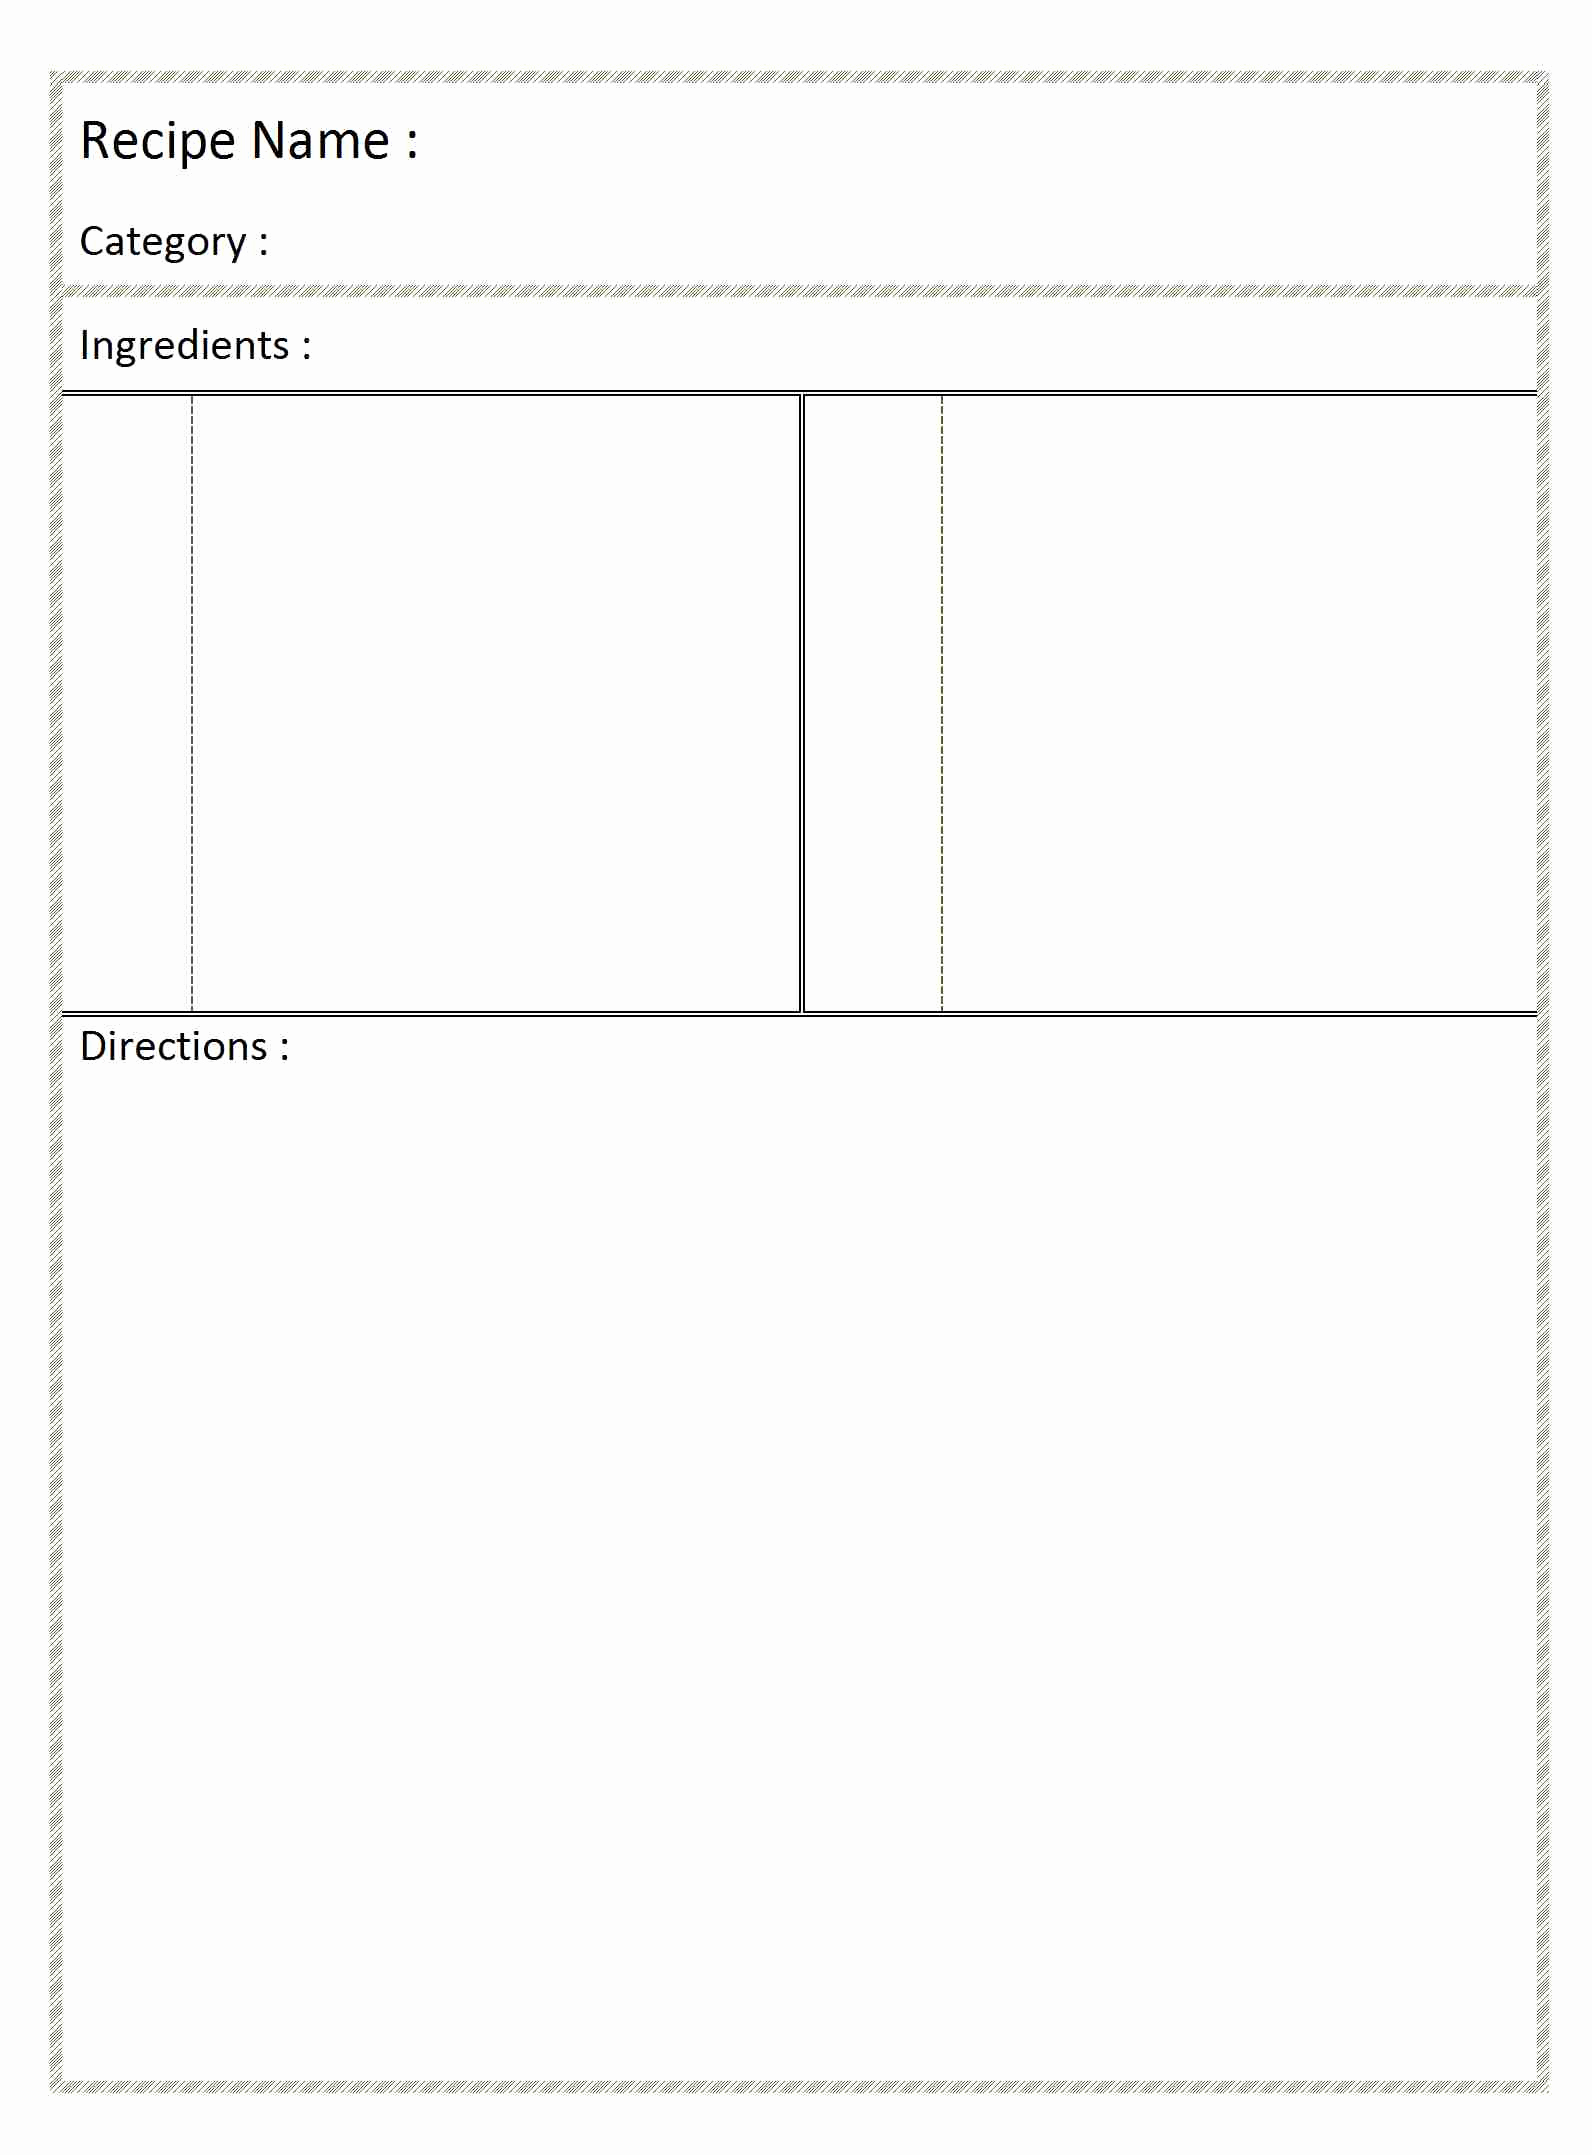 Free Recipe Template for Word Lovely Blank Recipe Card